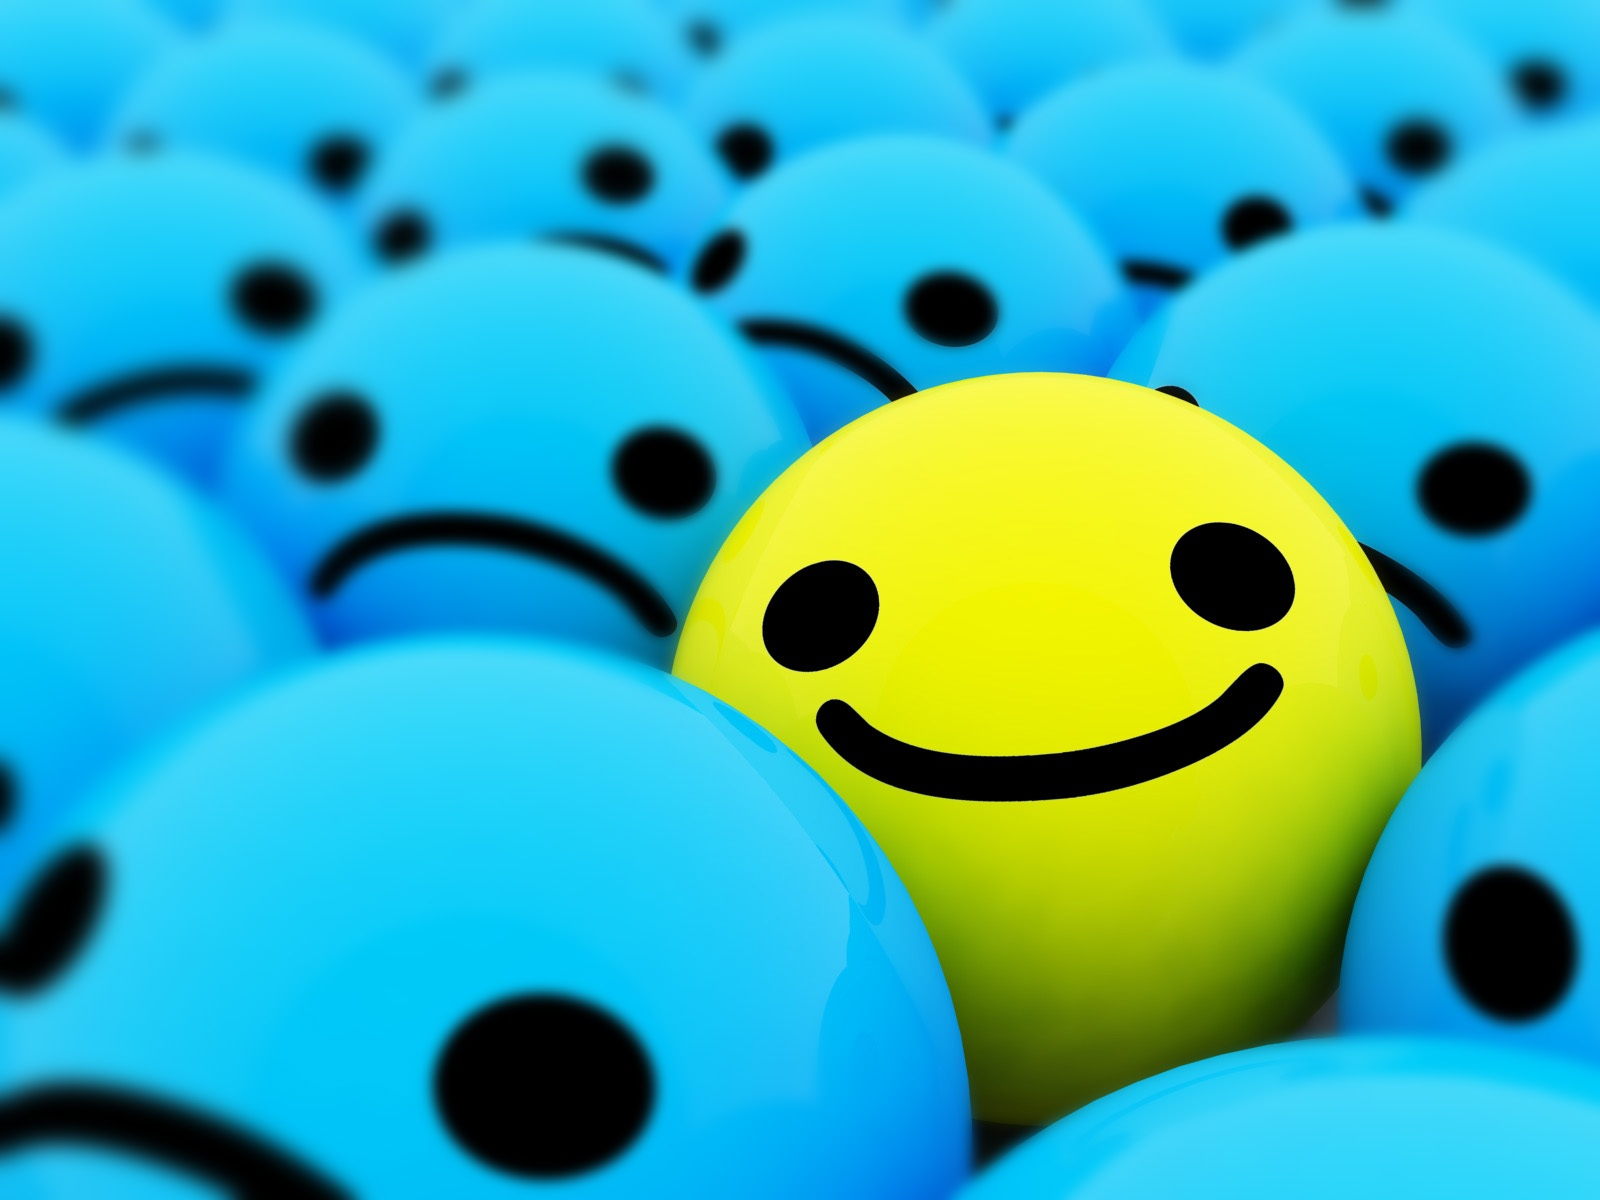 Happy smiling faces 3D Wallpaper | 1600x1200 resolution ...